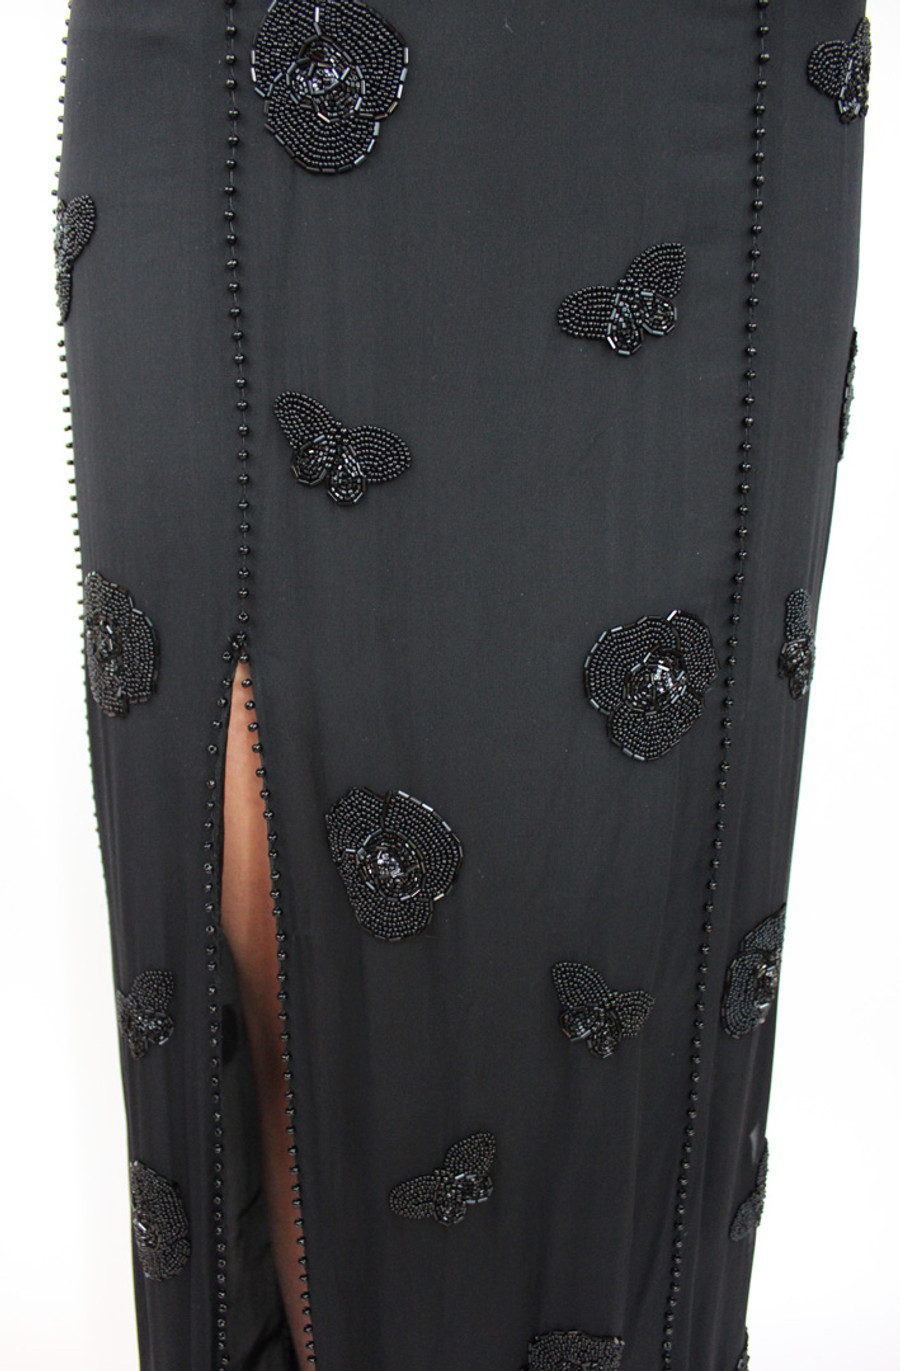 Closeup of front of dress with slit edged in beads